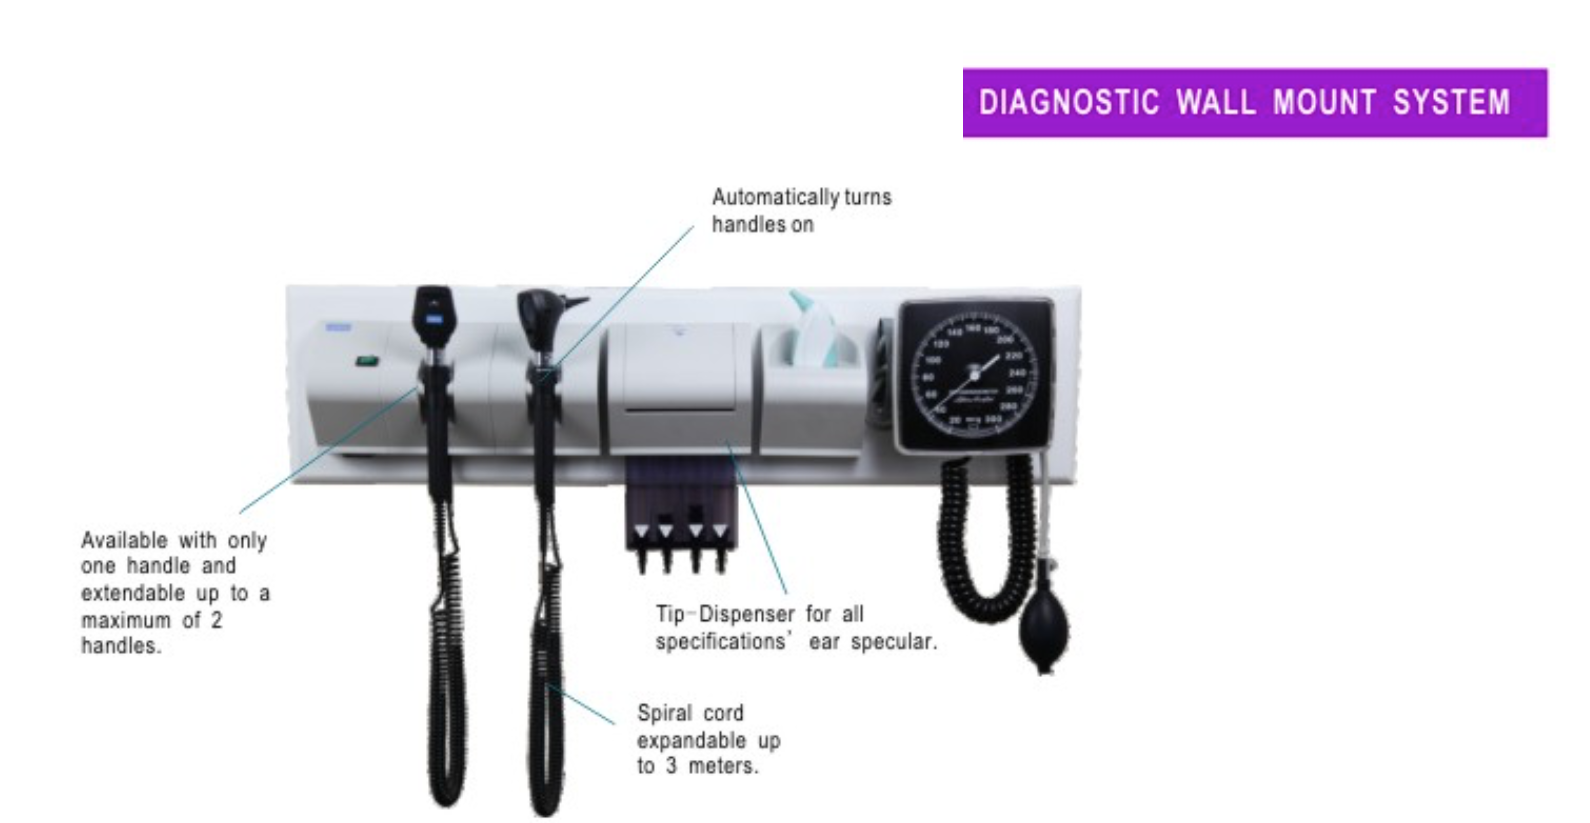 Ophthalmoscope, Otoscope and Sphygmomanometer Diagnosis Set Wall Mount